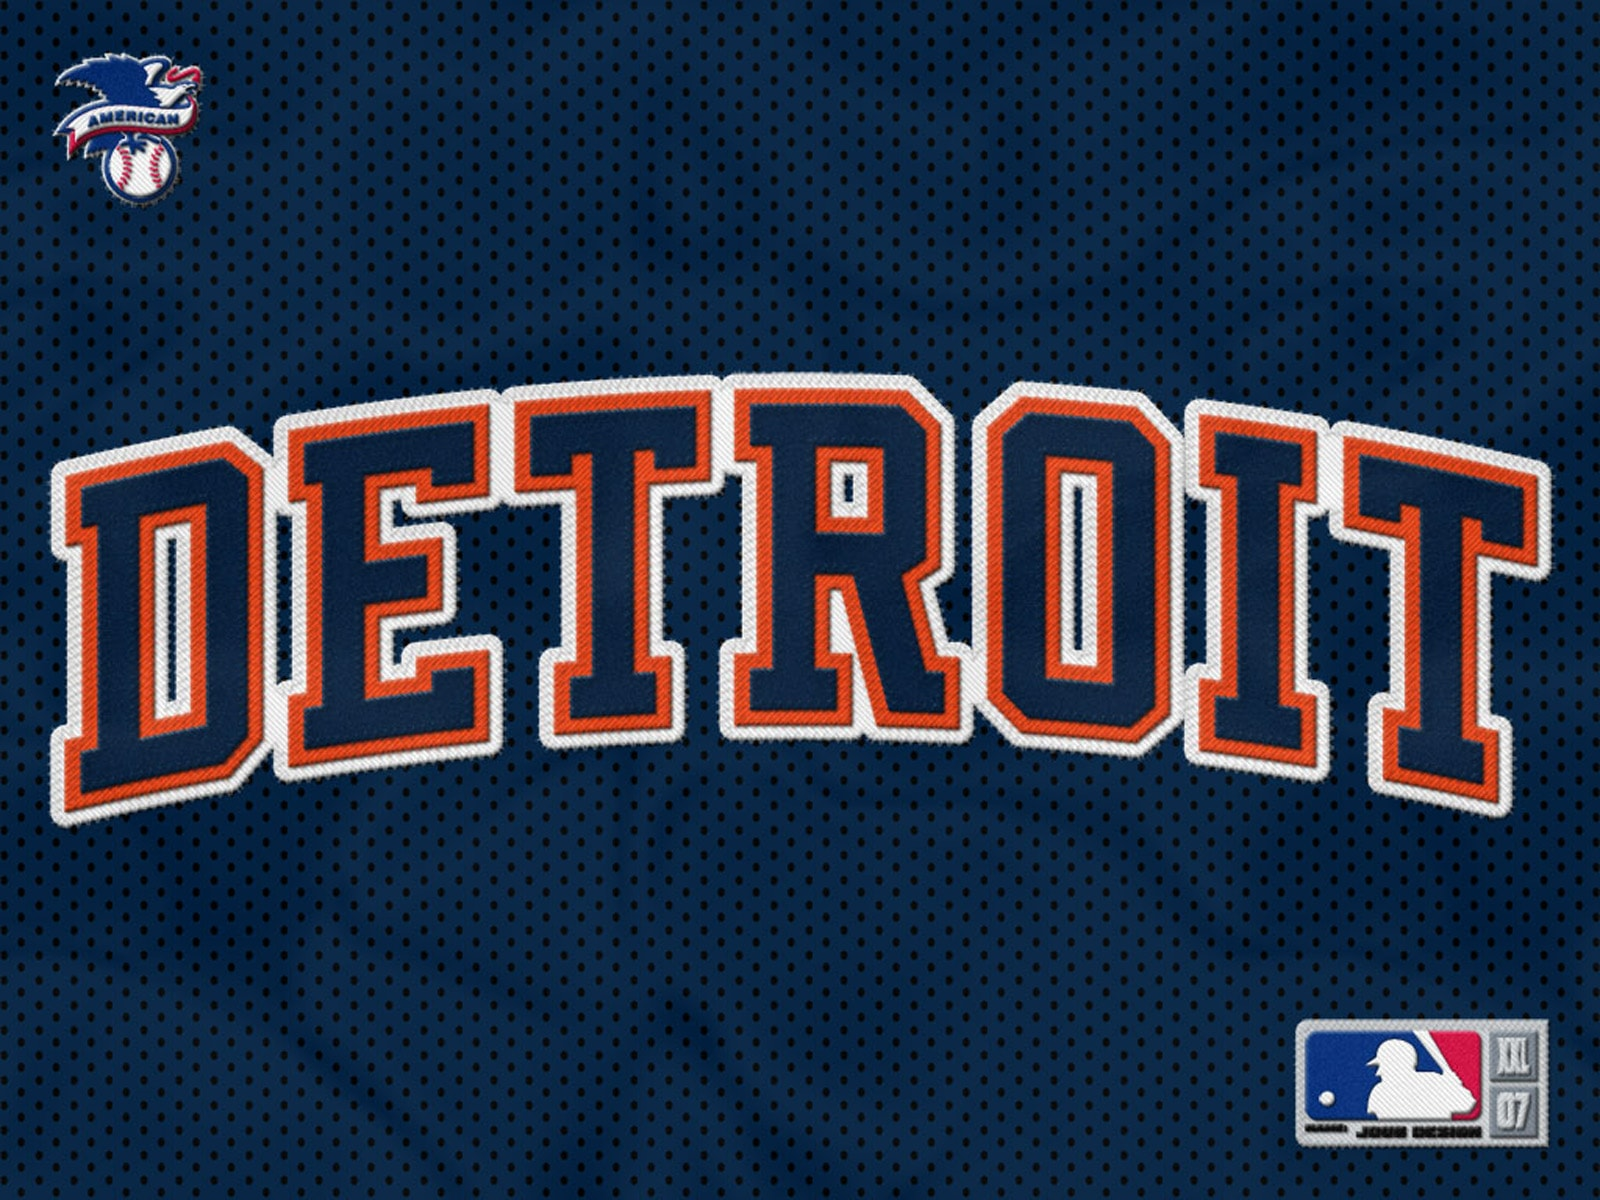 Detroit Tigers Background 42 Wallpapers Adorable Wallpapers